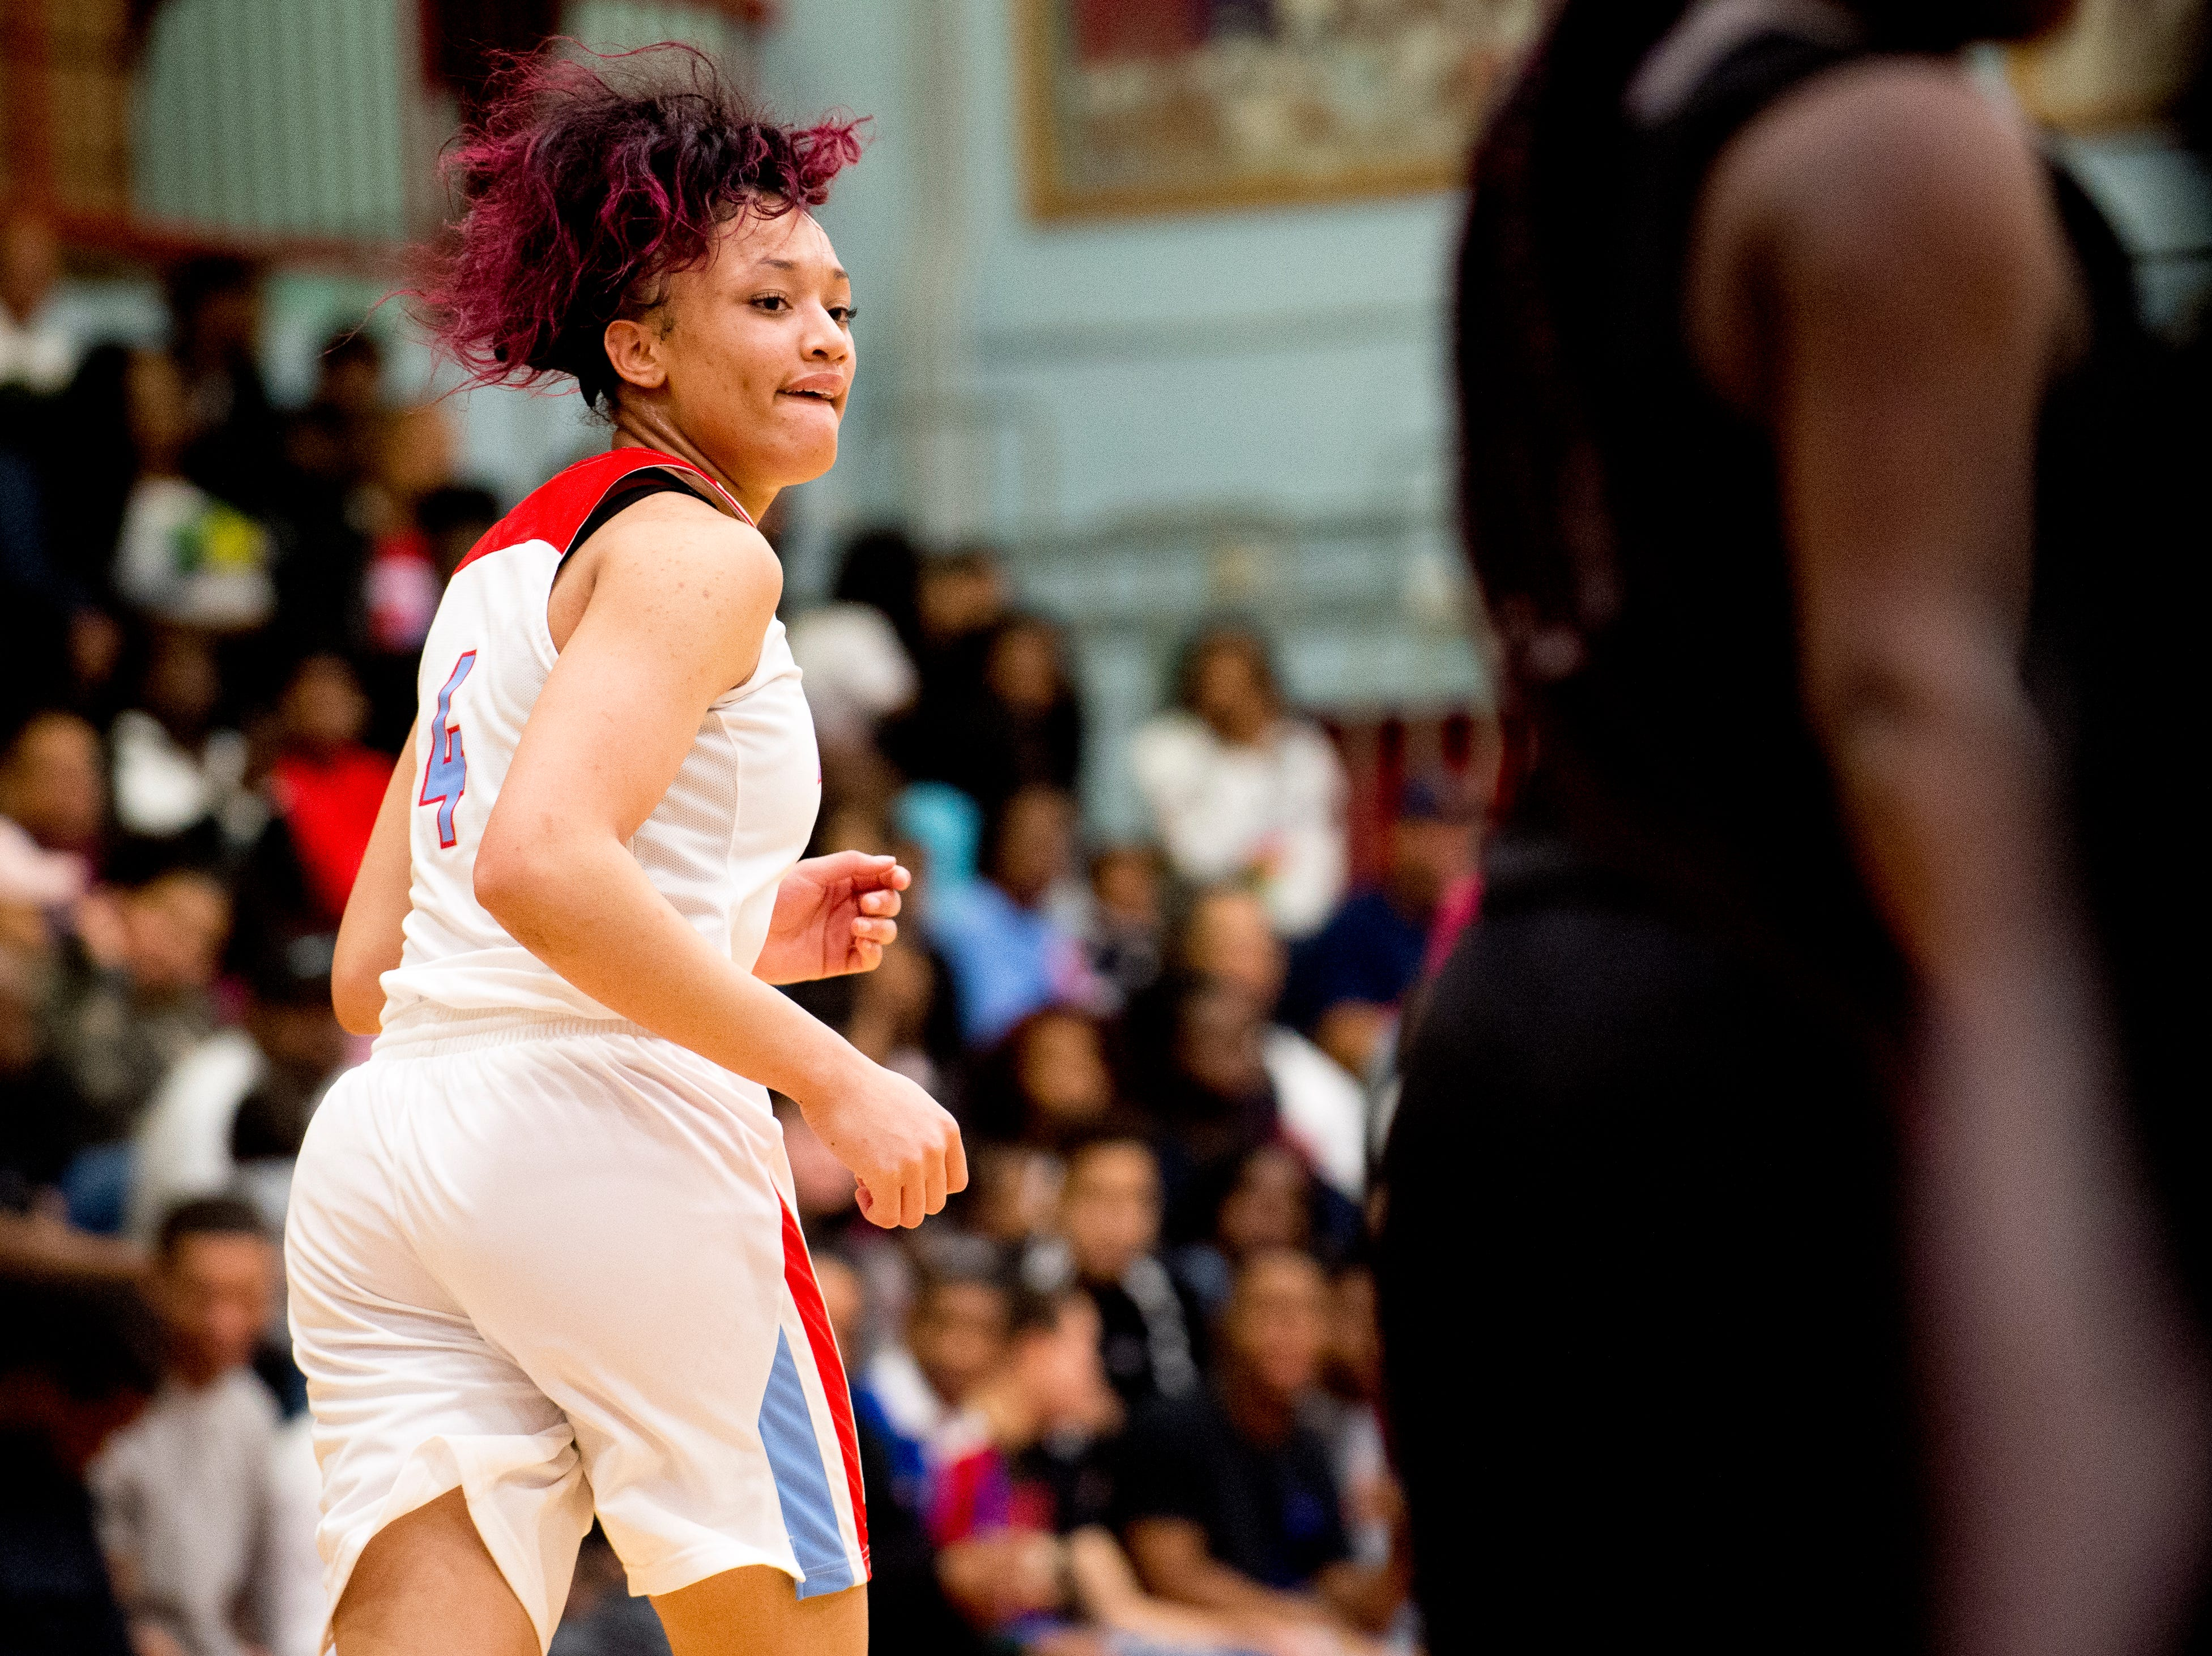 Austin-East's Larriana Bullard (4) reacts after scoring a point during a game between Austin-East and Fulton at Austin-East High School in Knoxville, Tennessee on Saturday, January 5, 2019.